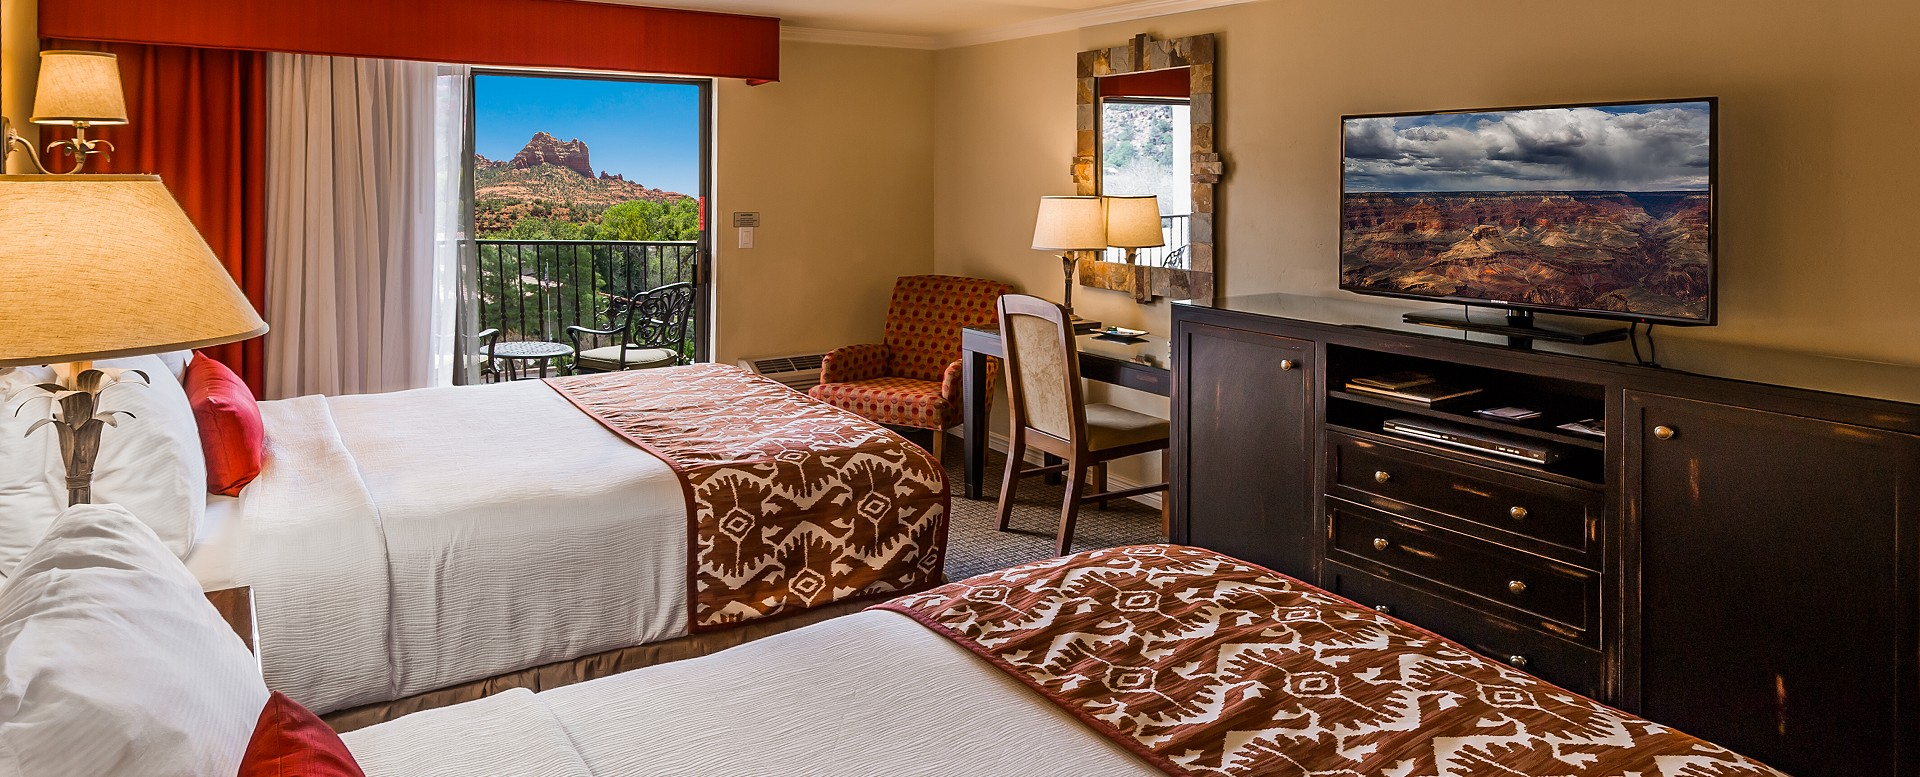 Best Western Plus Arroyo Roble Hotel - Standard Double Queen Guestroom